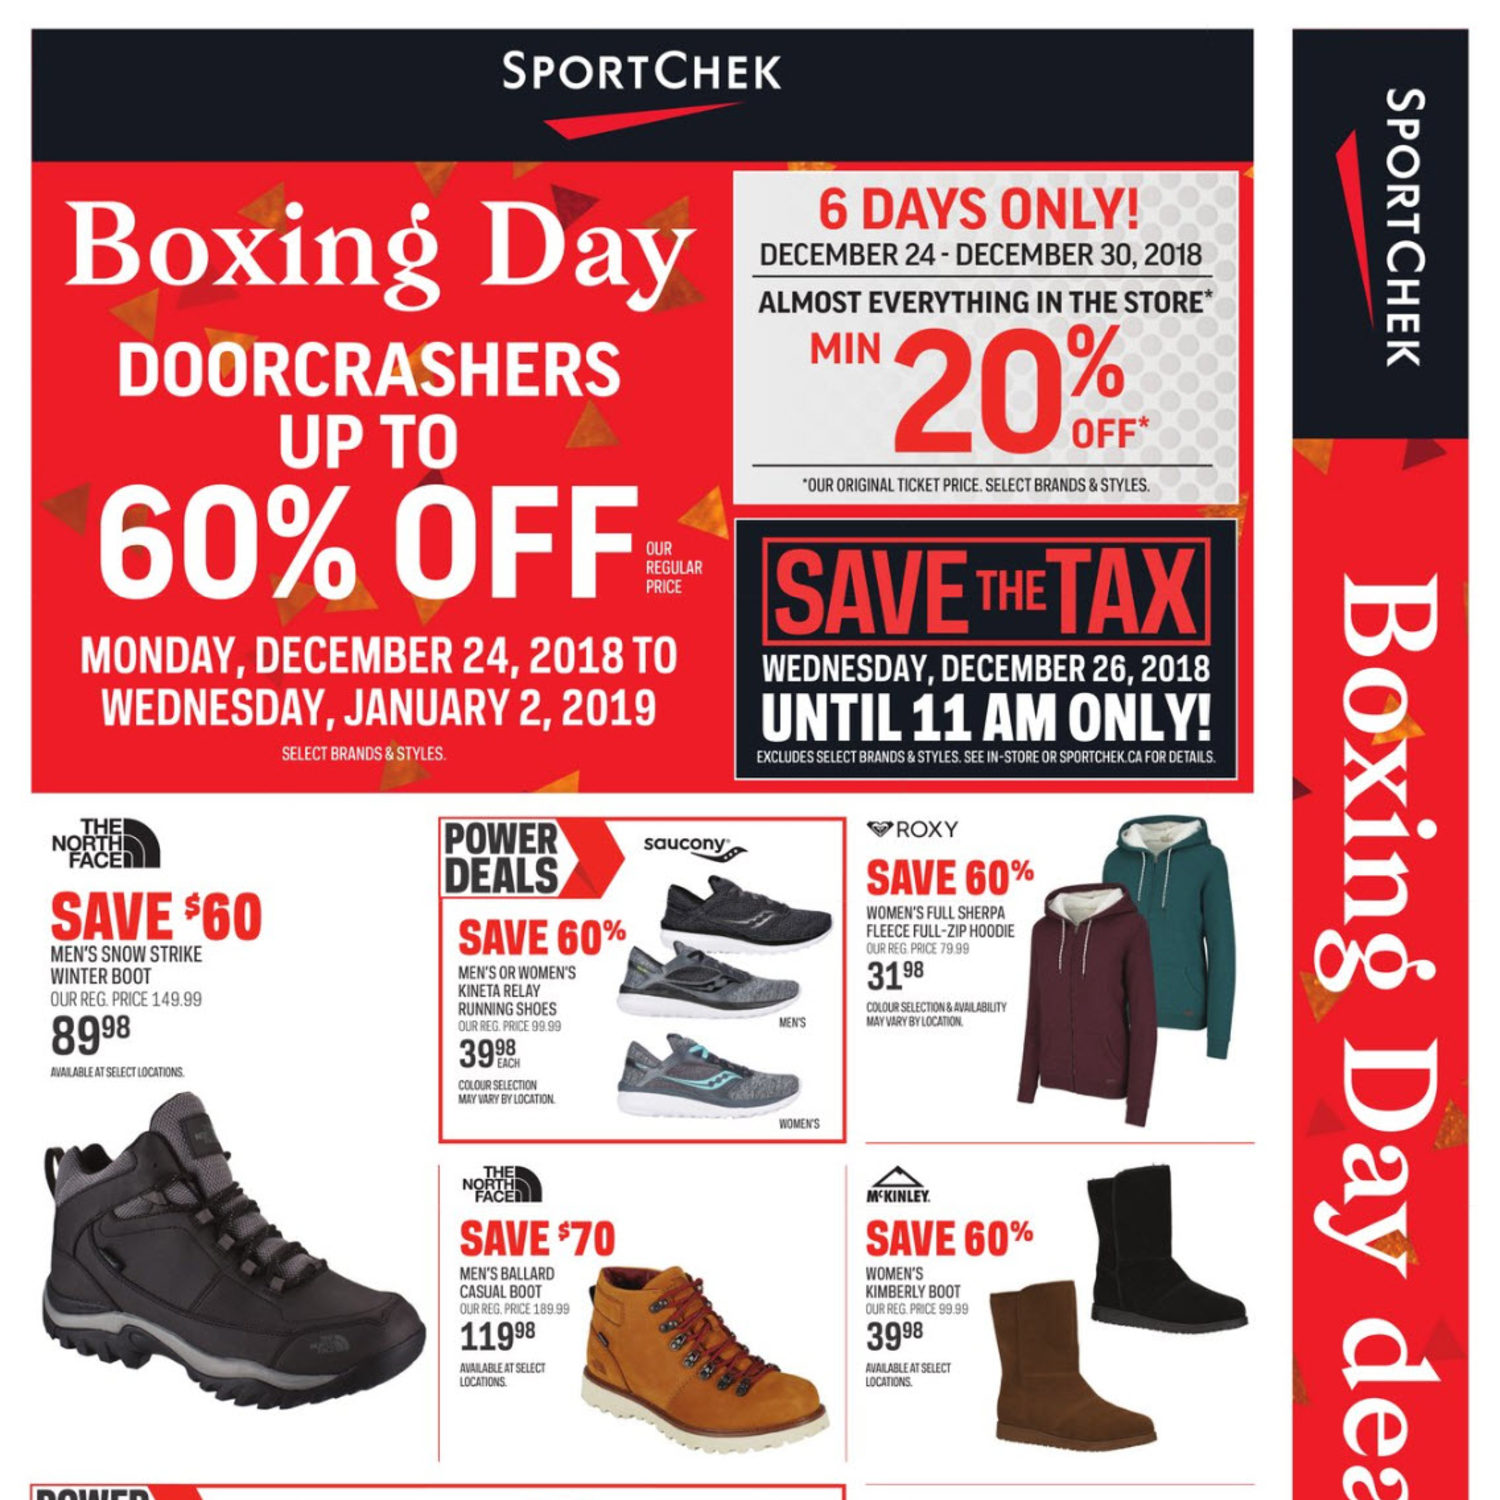 Sport Chek Weekly Flyer - Boxing Day Deals Here! - Dec 24 – Jan 2 -  RedFlagDeals.com 5ffd38e58